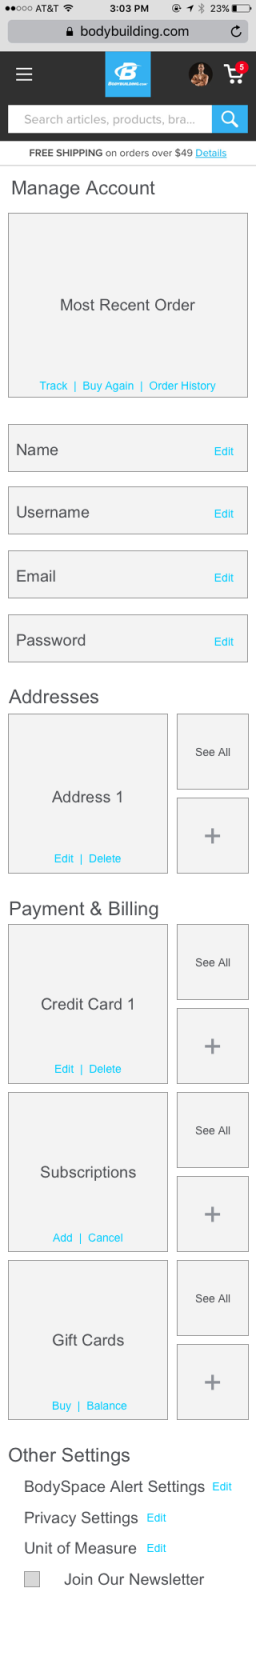 Account Management Wireframe